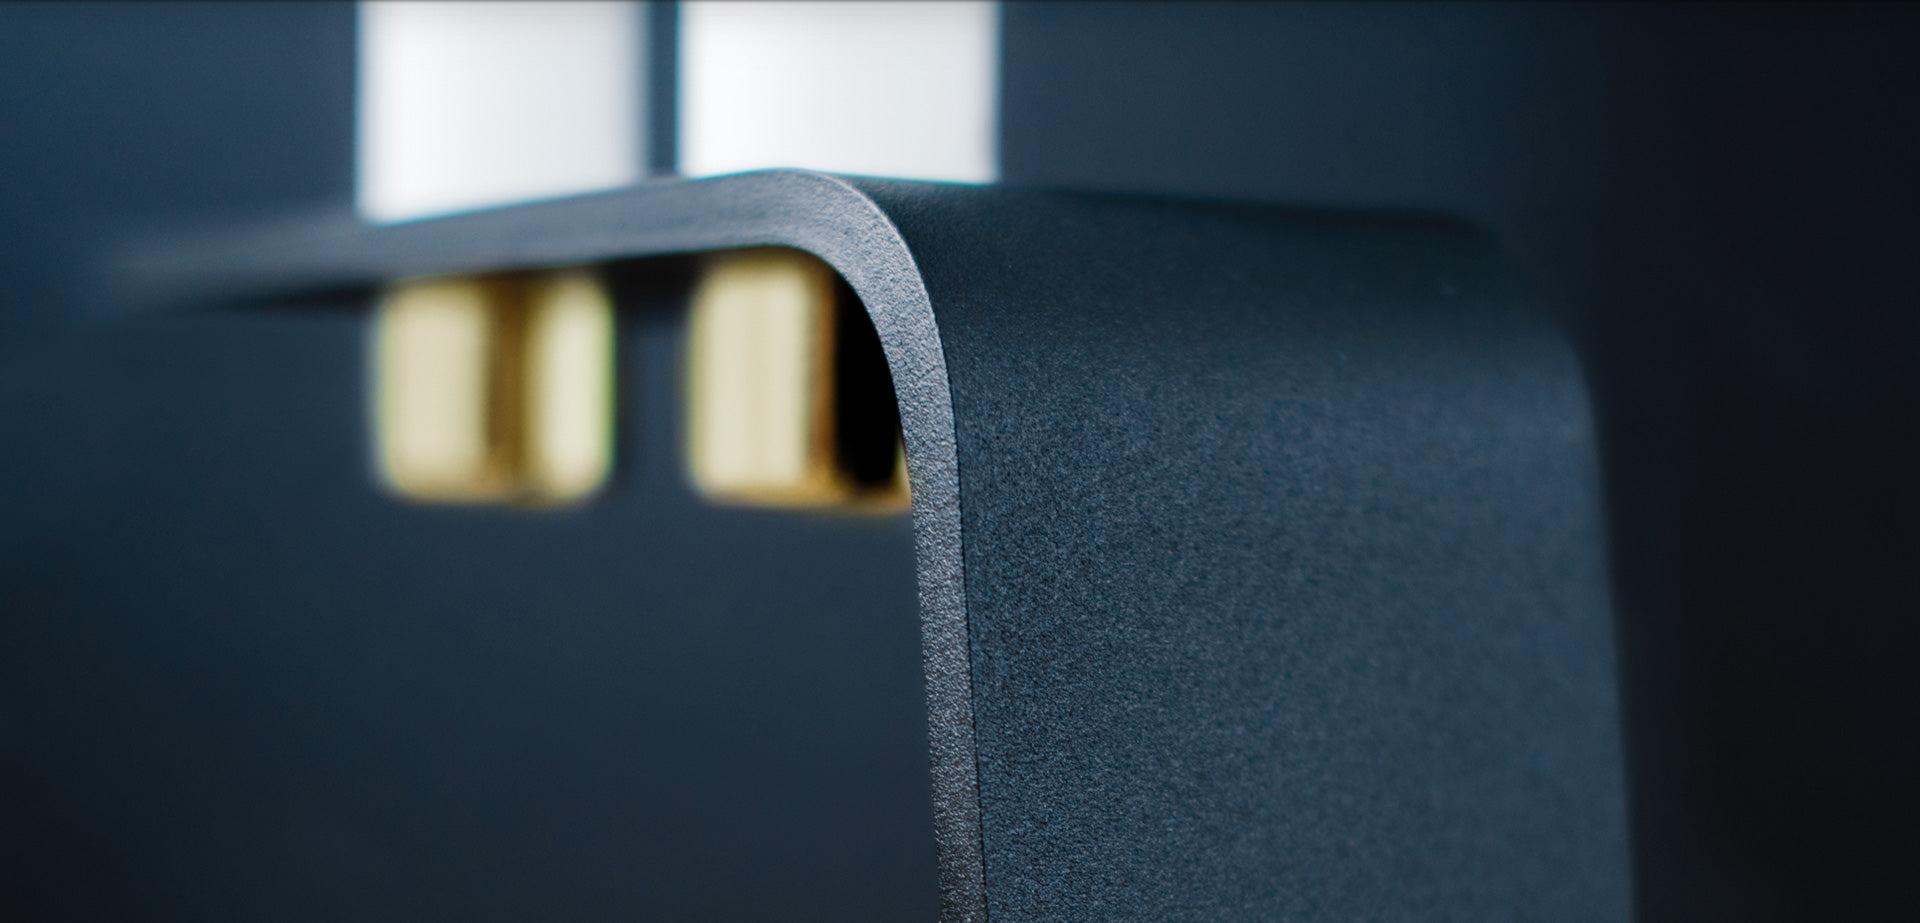 Vinkel candle holder close up of matte black powdercoated textured surface